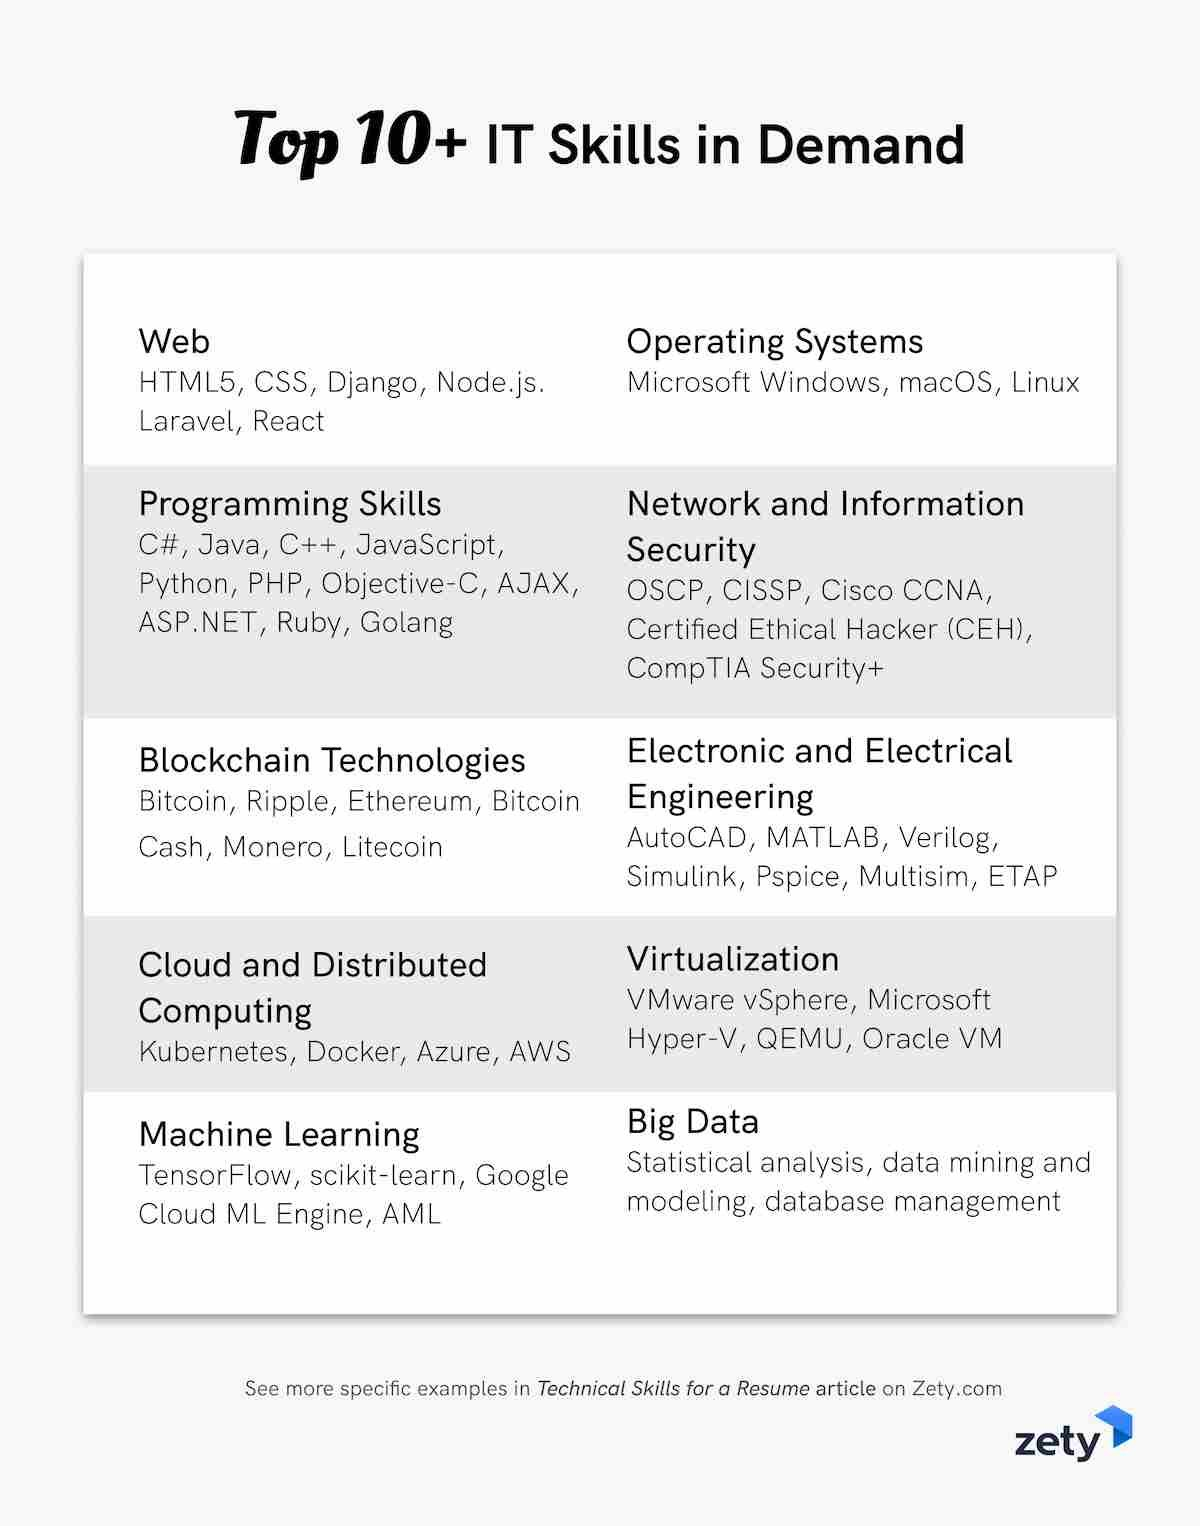 technical skills for resume with examples blockchain technology top it in demand can you Resume Blockchain Technology Resume